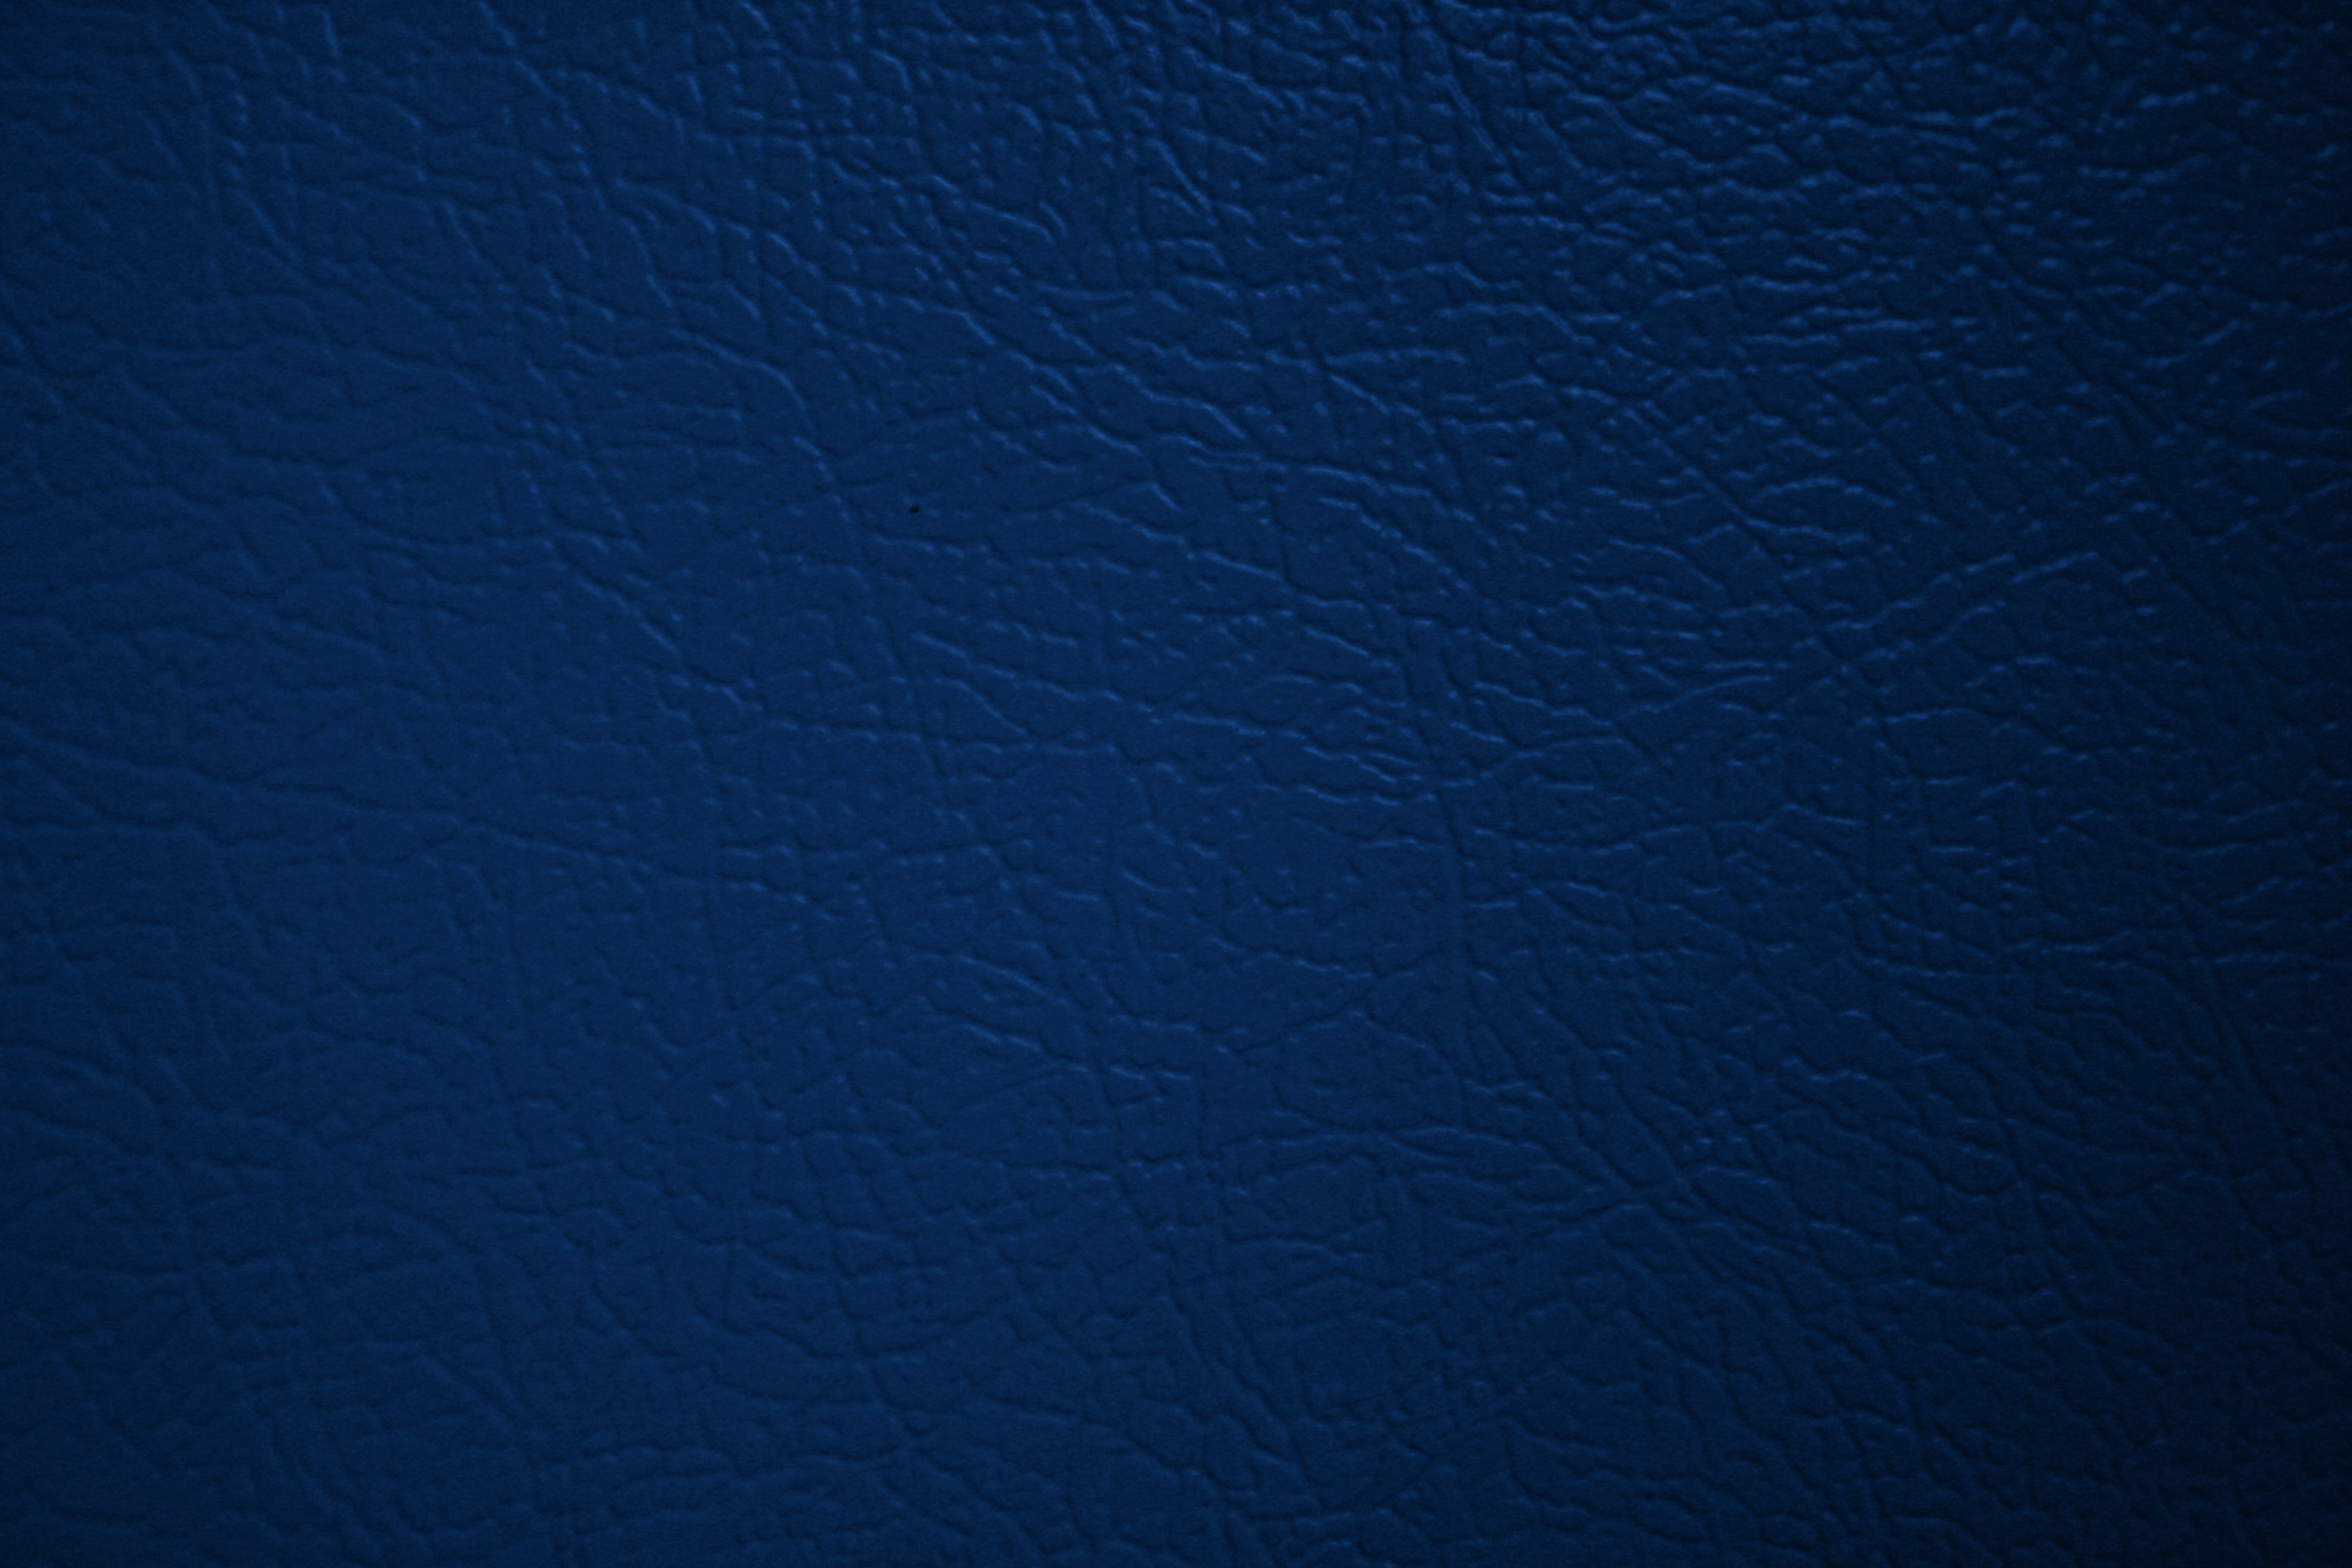 Leather Textures clipart blue leather Faux Texture Pictures Free Leather